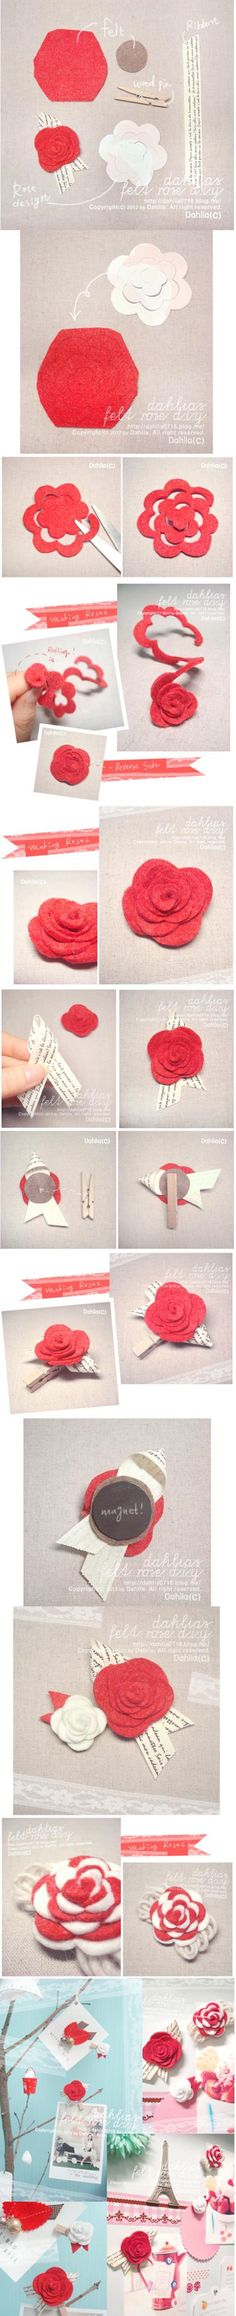 craft flowers, wrap gifts, felt projects, flower crafts, paper flowers, flower tutorial, kid crafts, paper crafts, felt flowers